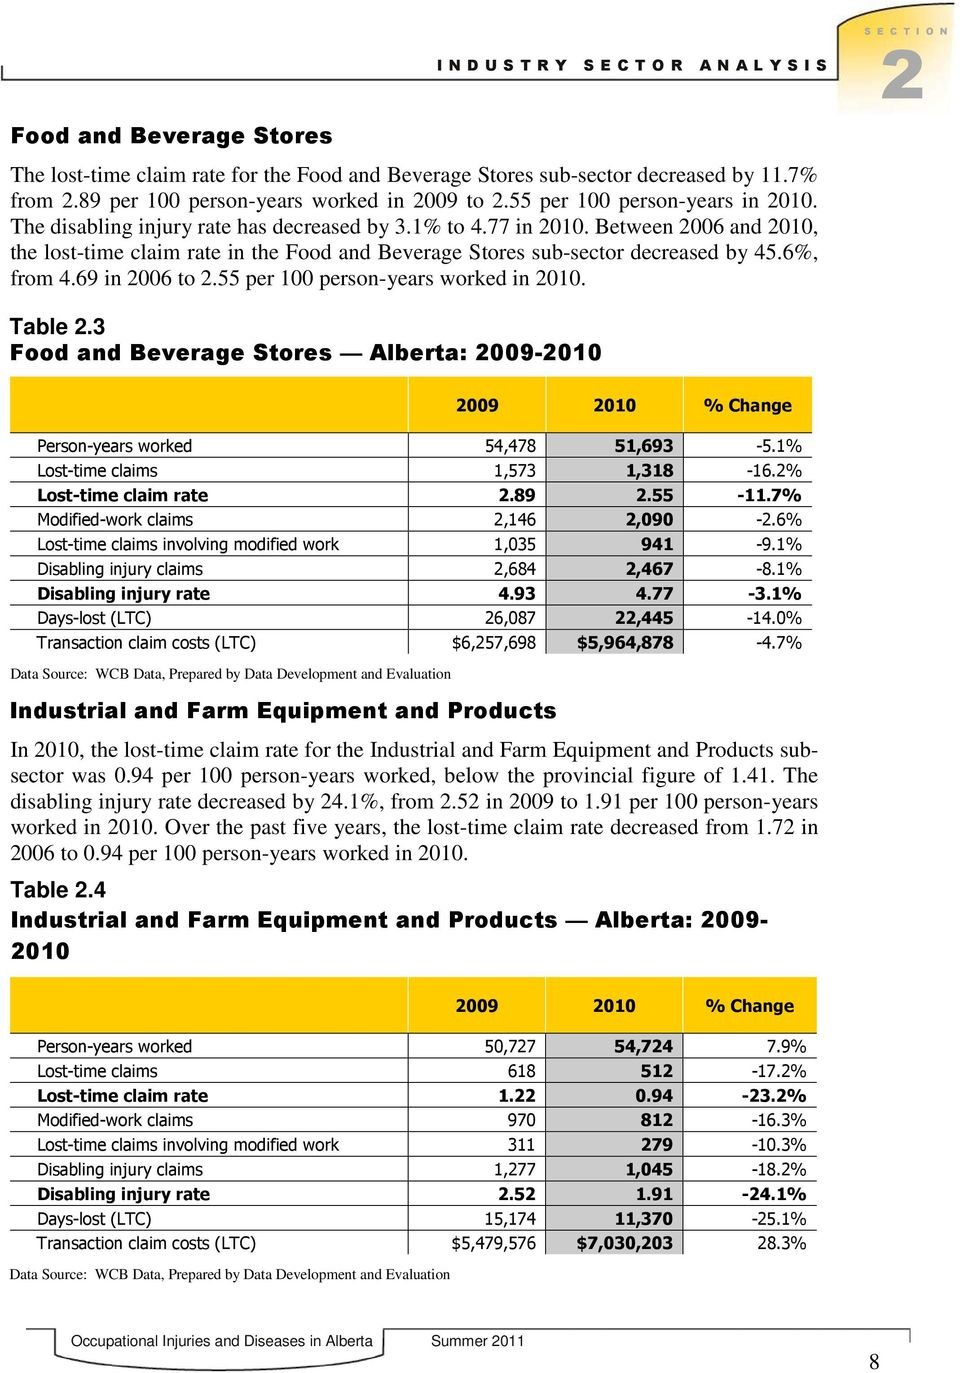 Between 2006 and 2010, the lost-time claim rate in the Food and Beverage Stores sub-sector decreased by 45.6, from 4.69 in 2006 to 2.55 per 100 person-years worked in 2010. Table 2.